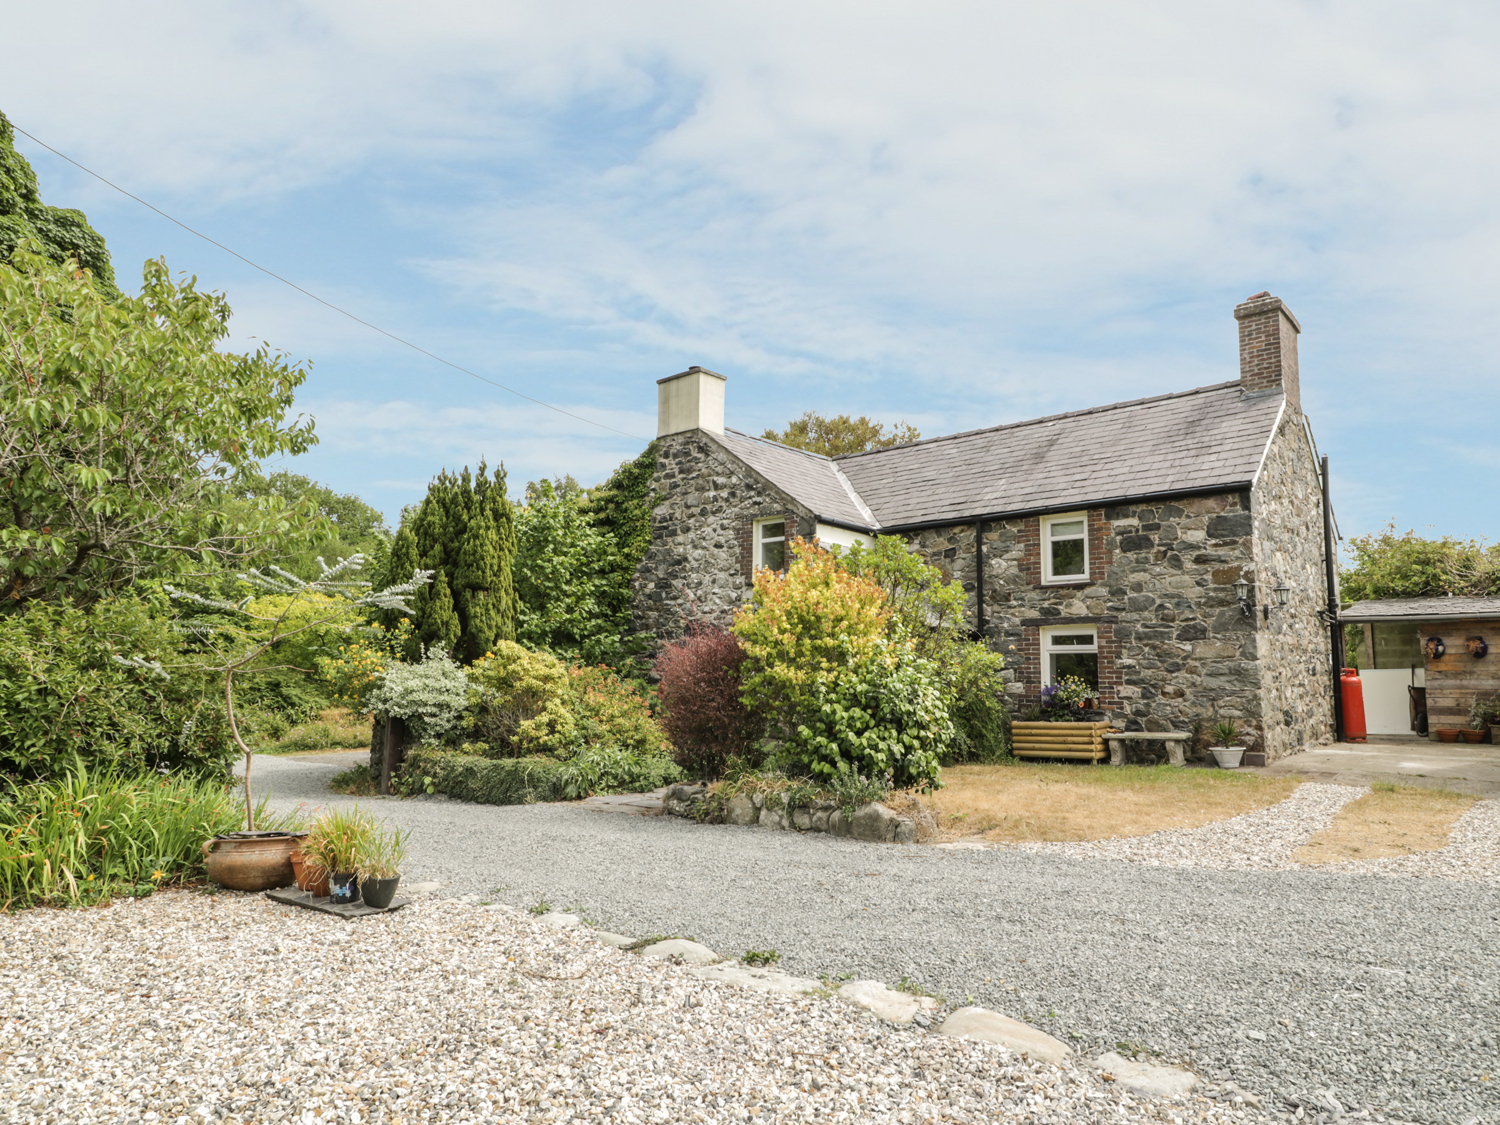 4 bedroom Cottage for rent in Caernarfon